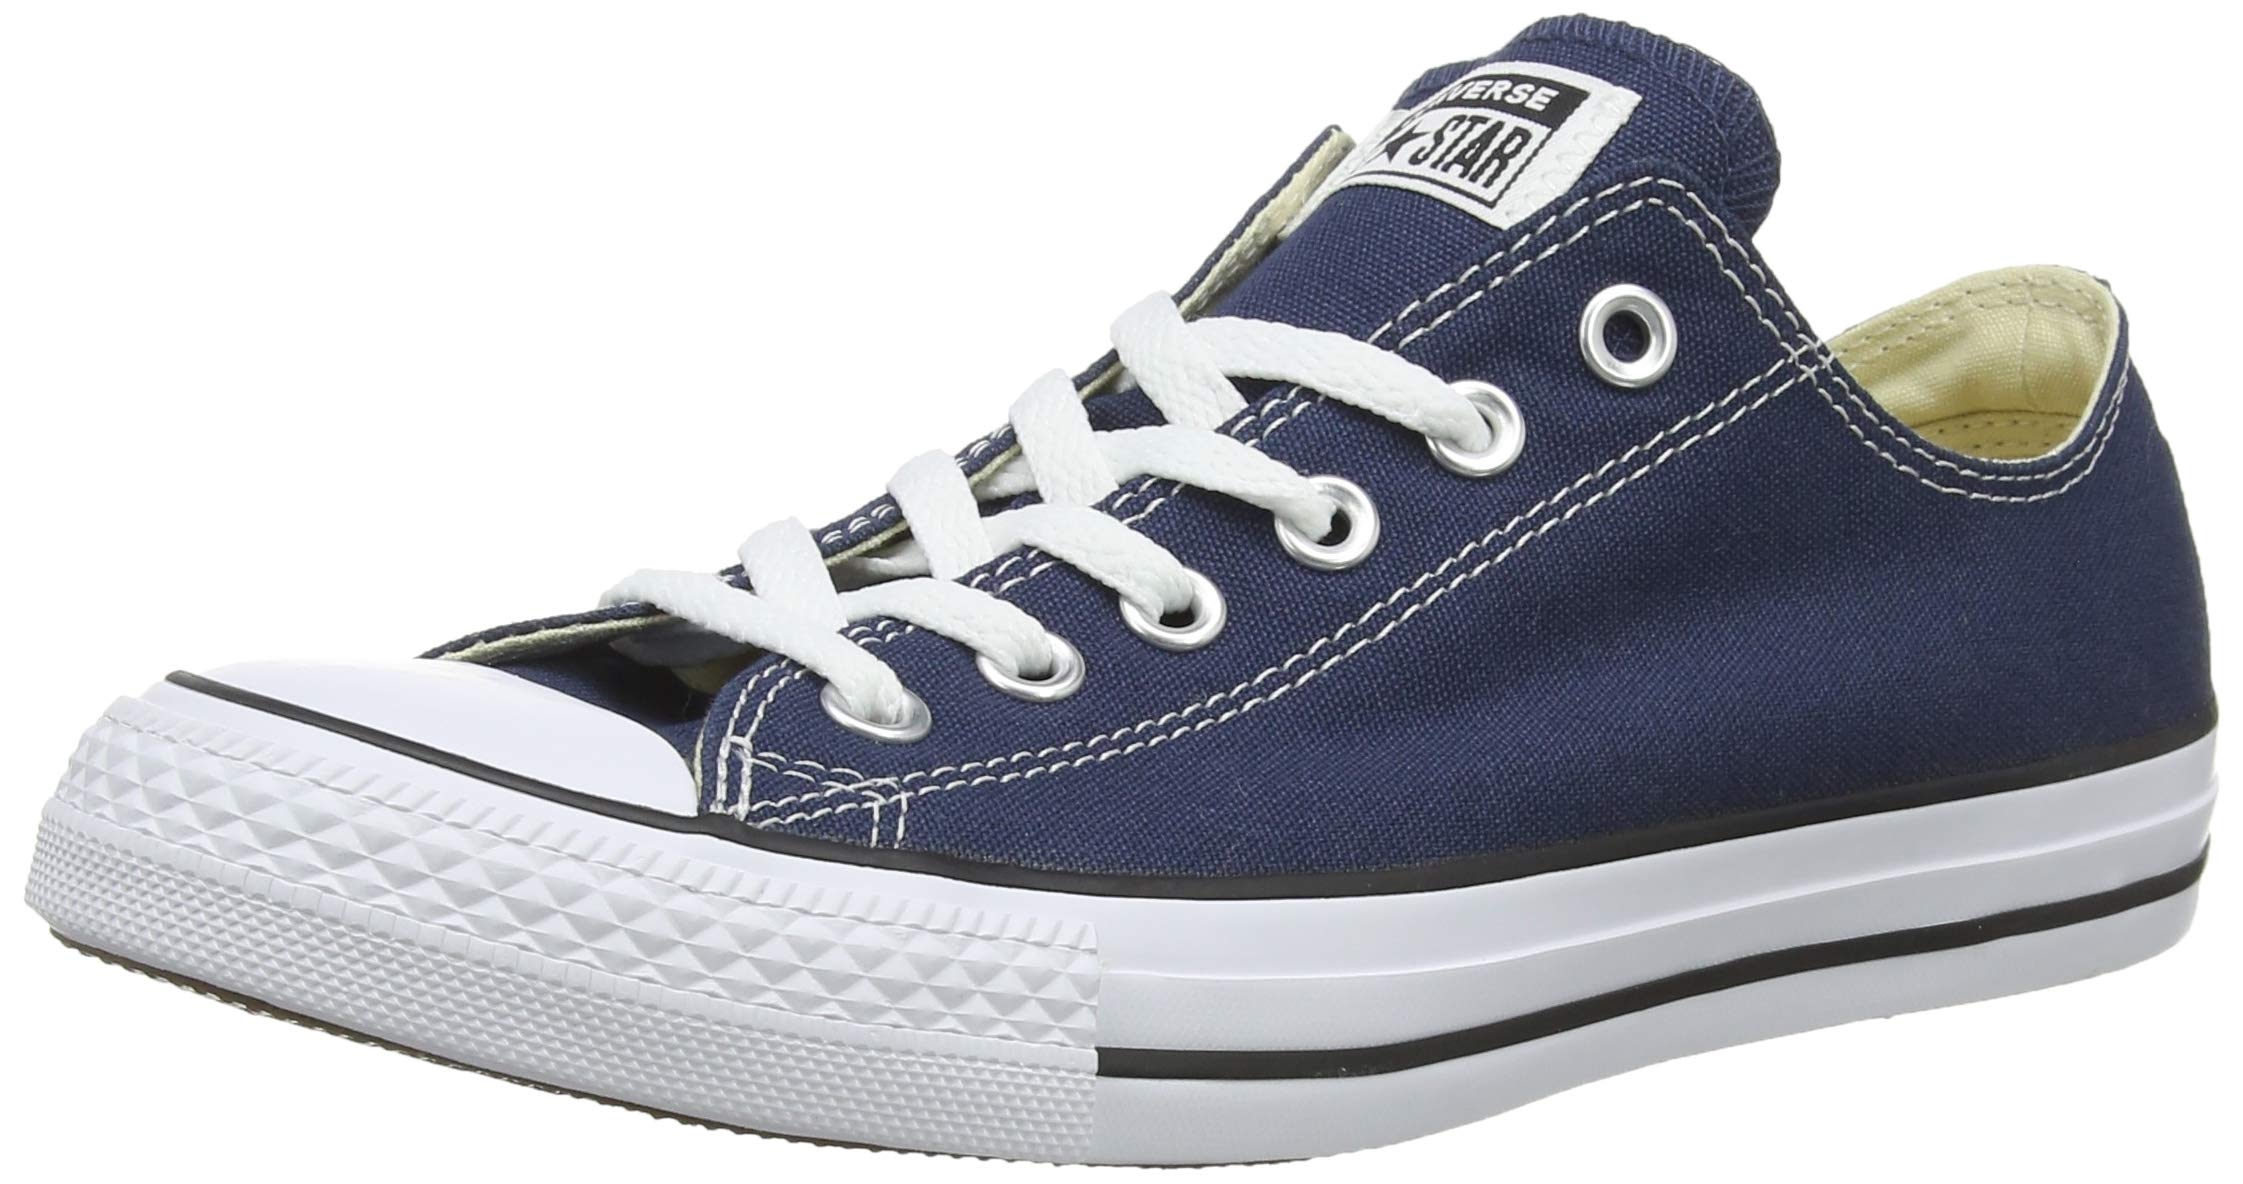 Converse Unisex Chuck Taylor All Star Low Top Navy Sneakers - 8.5 D(M) US